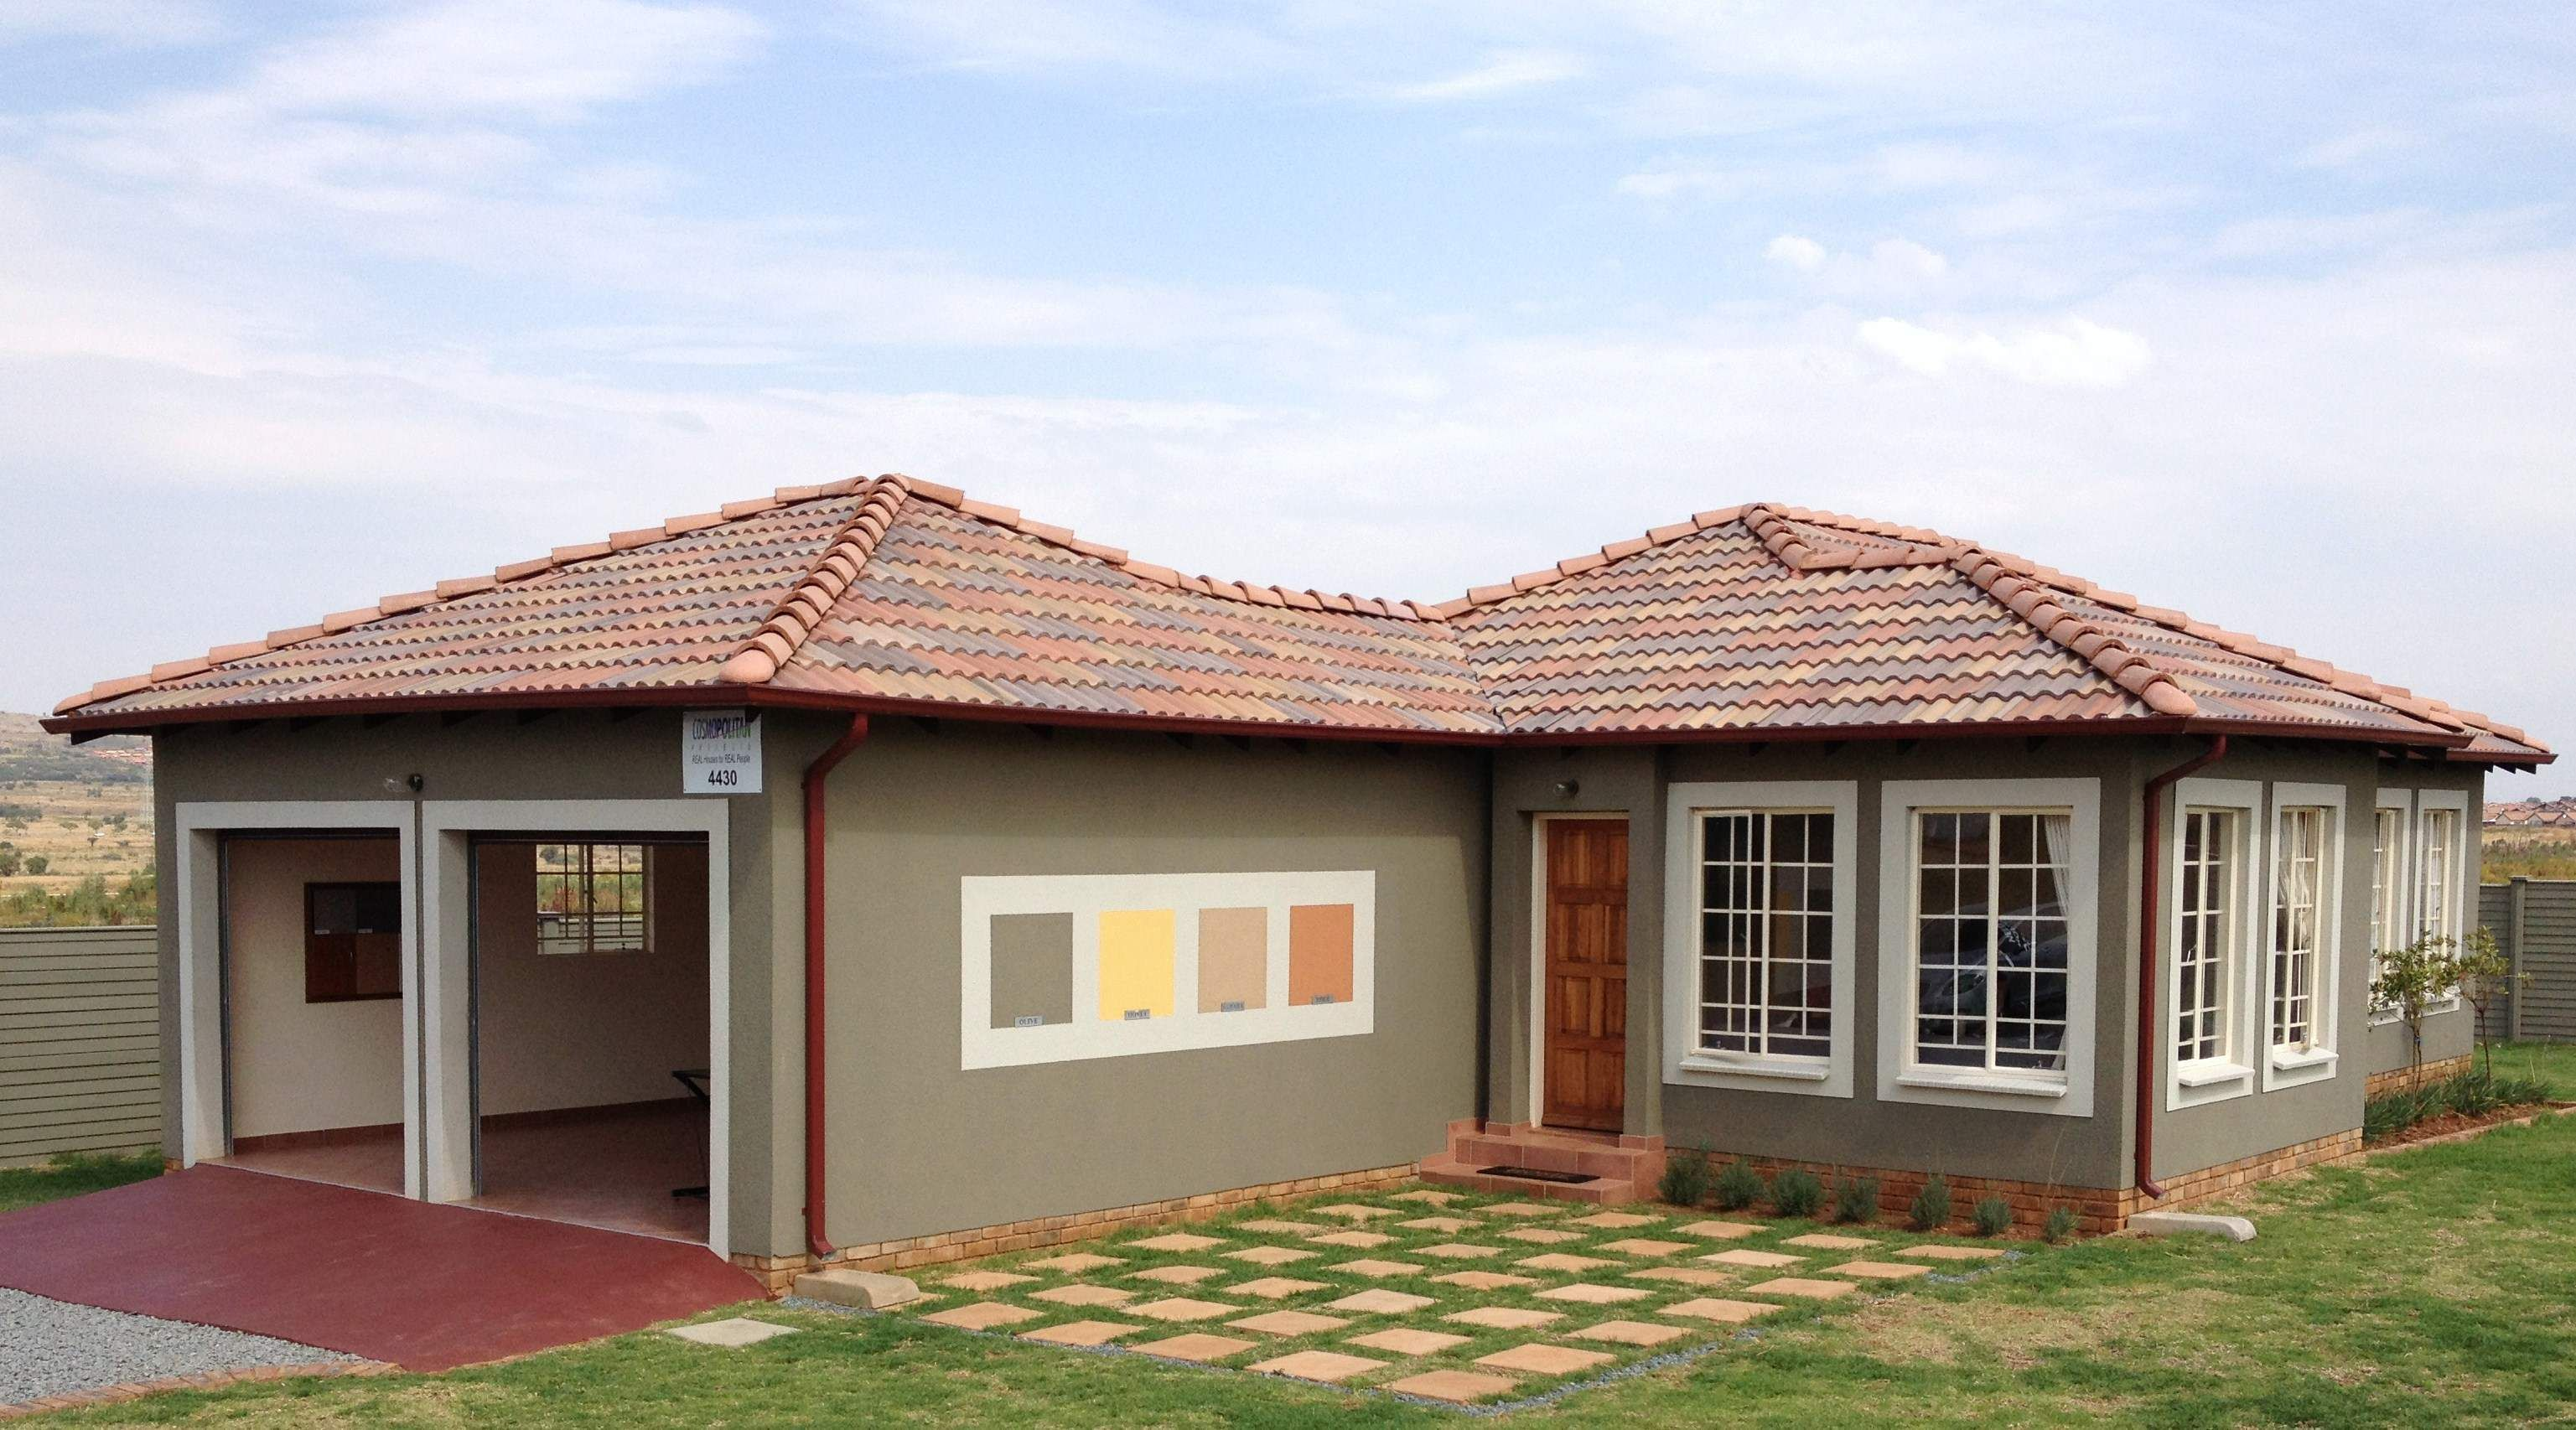 South African House Plans The Tuscan House Plans Designs South Africa Modern Tuscan